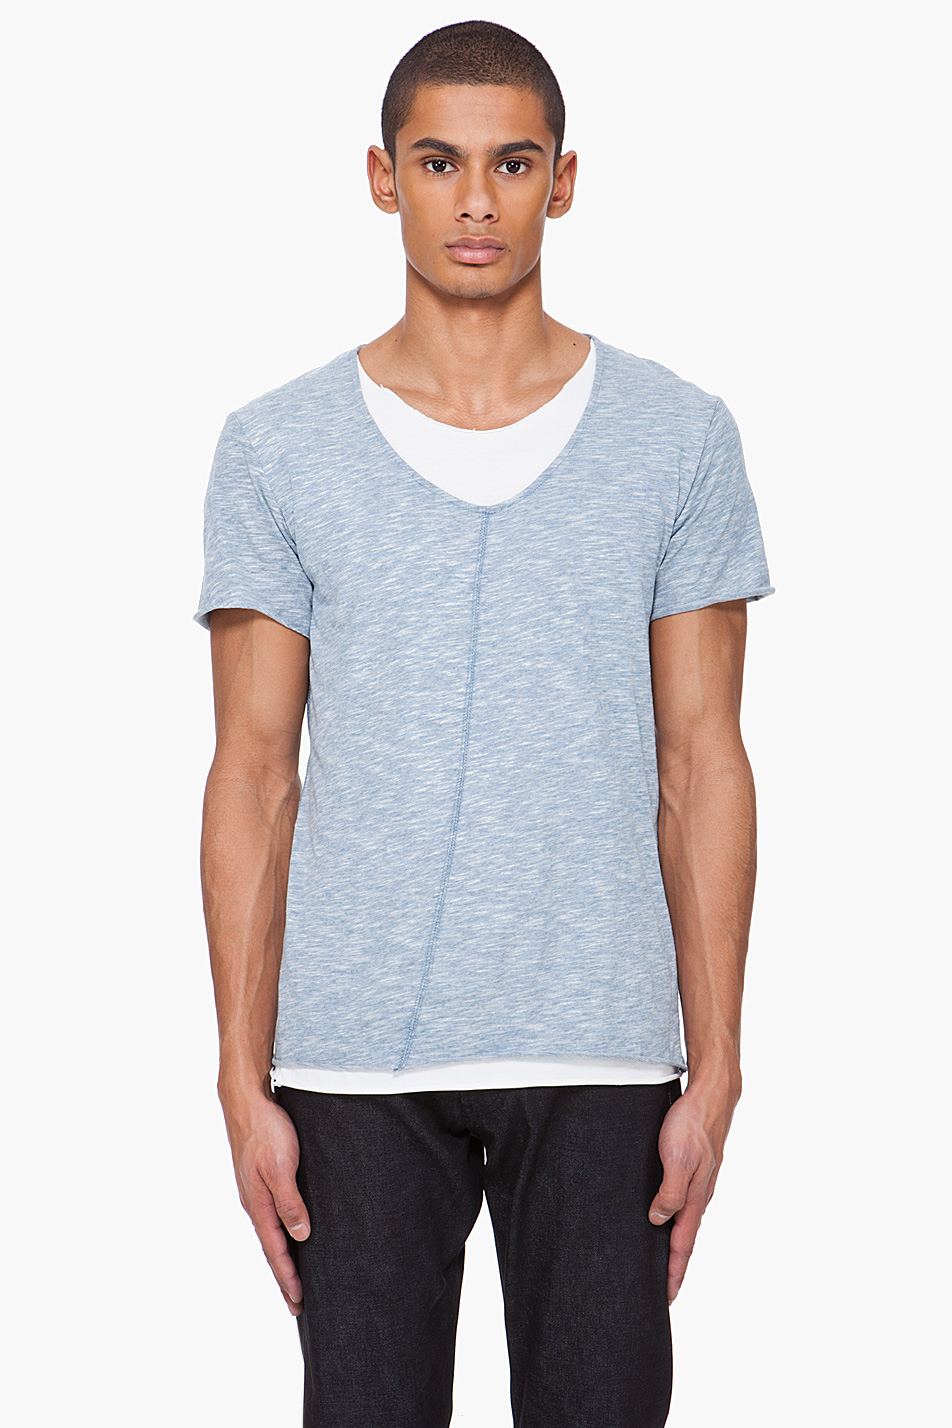 Shades of Grey shirt.jpg